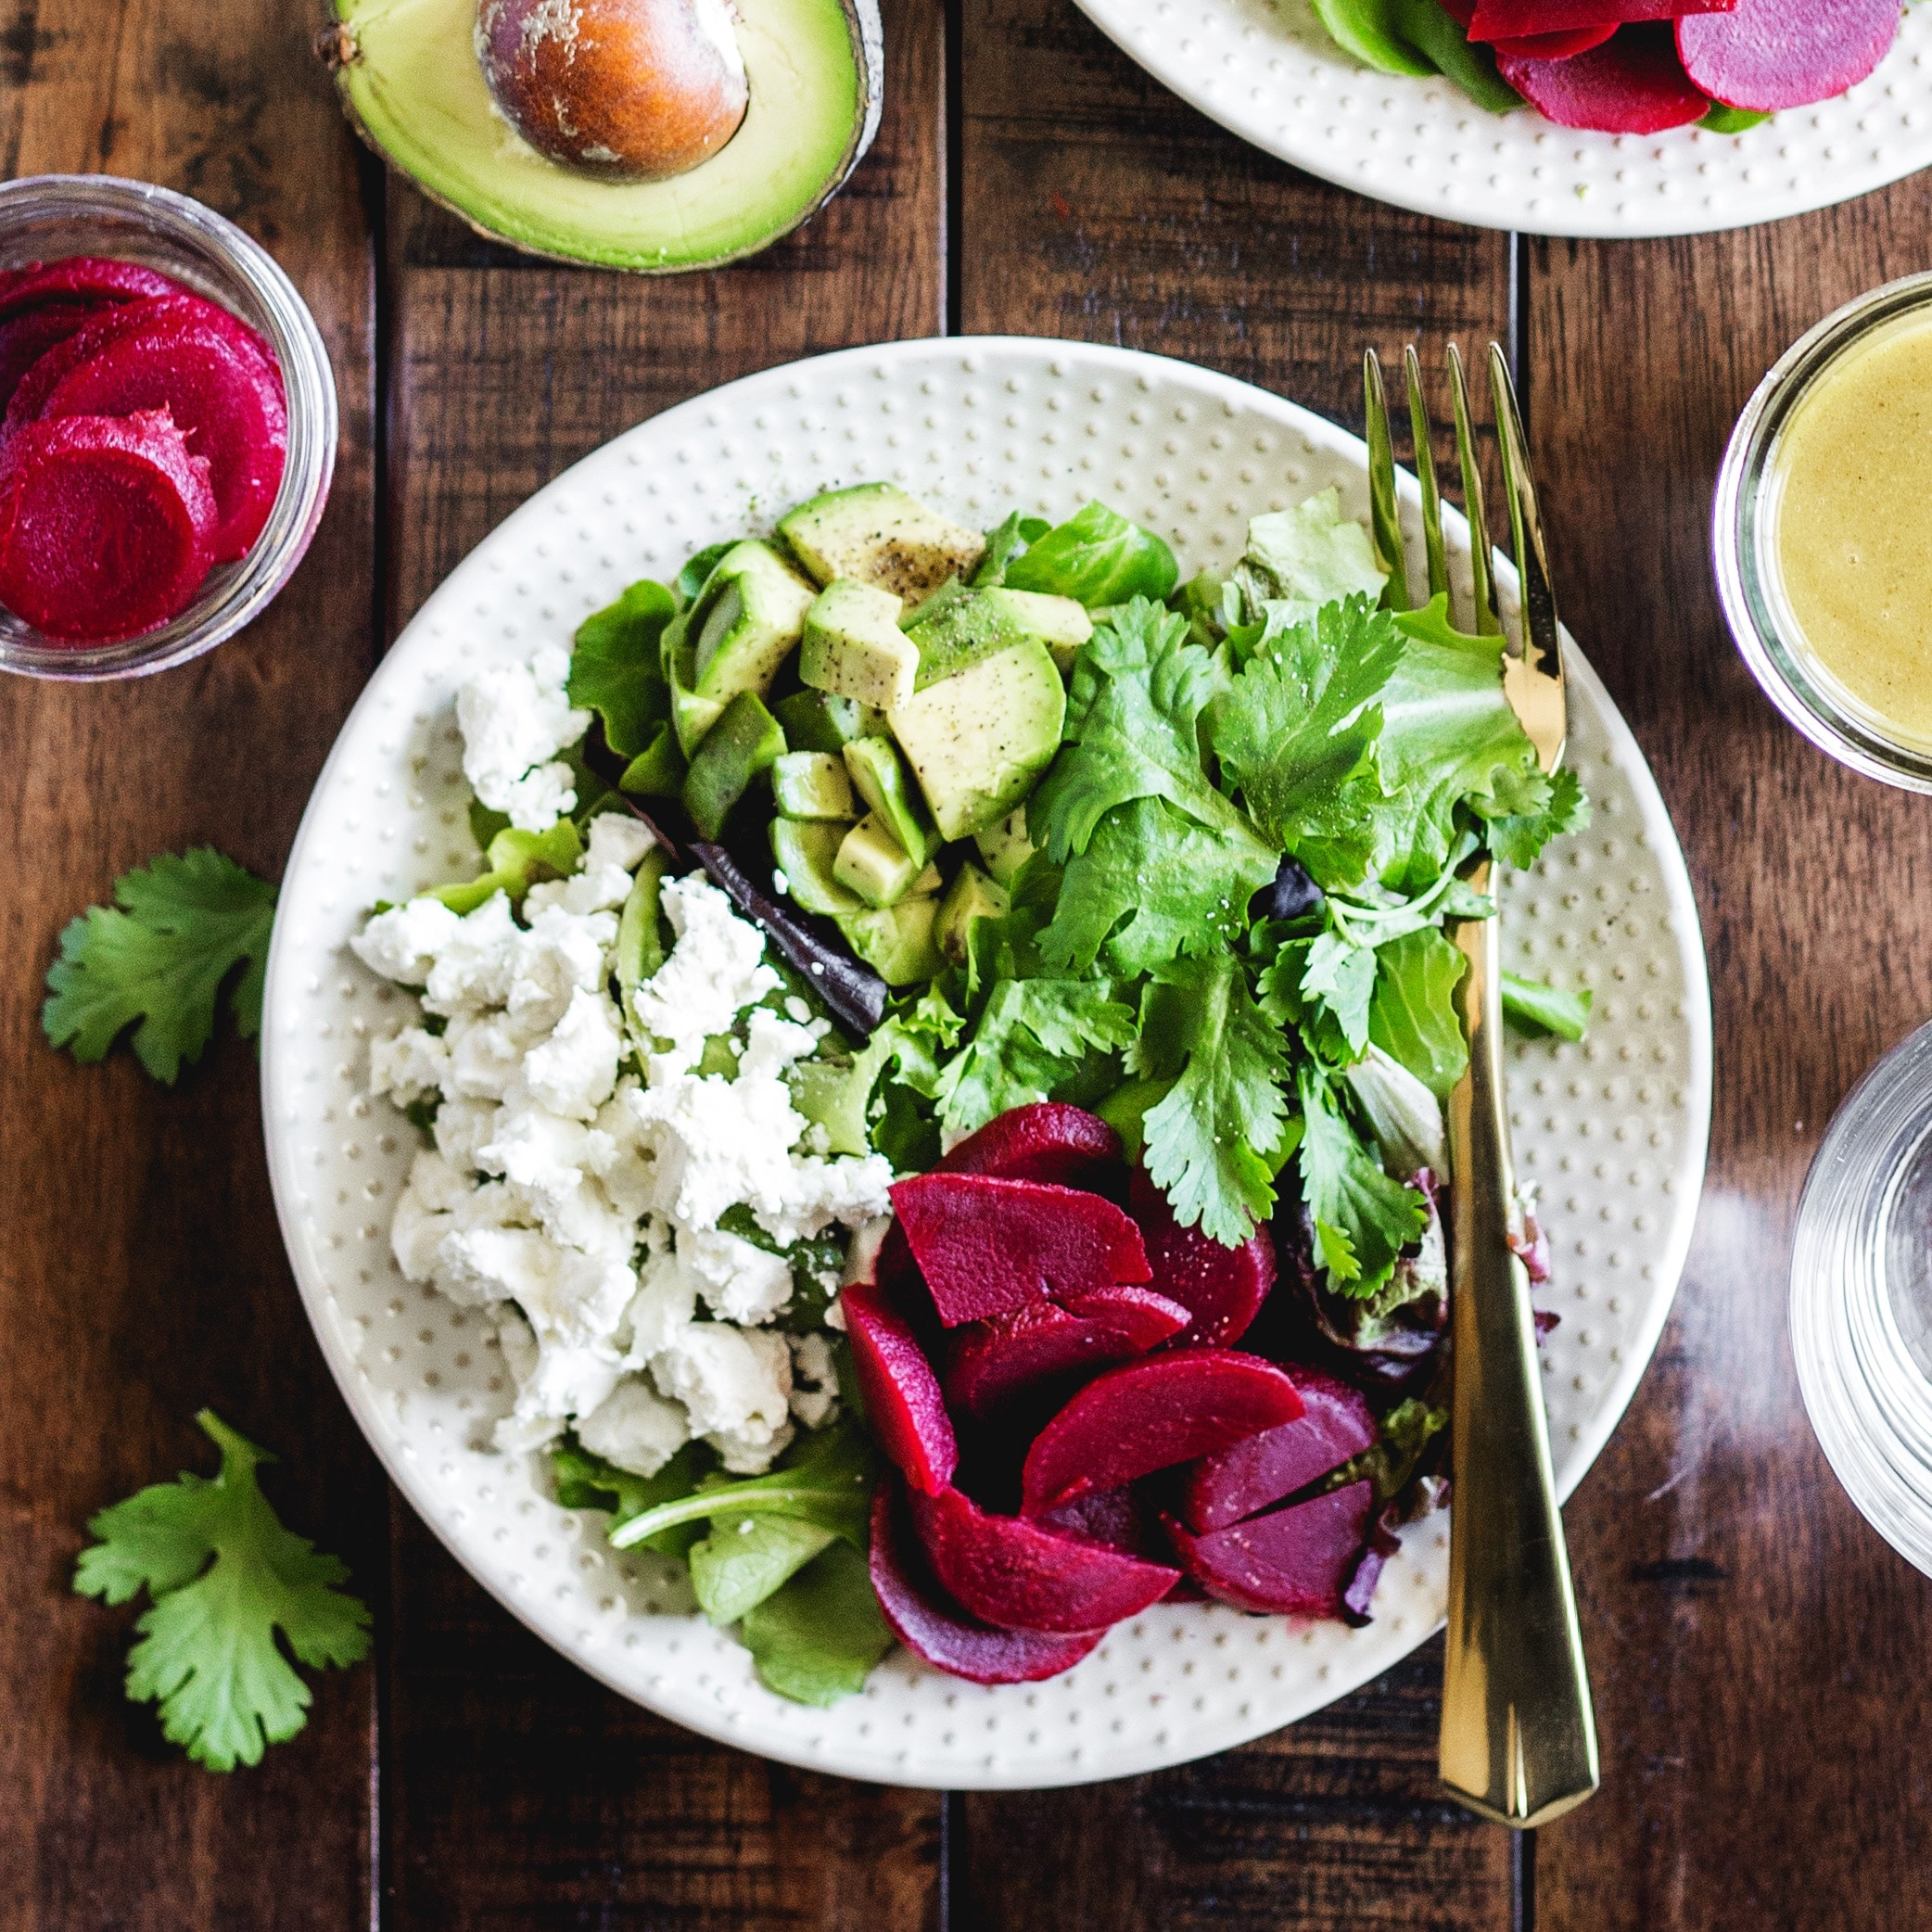 Avocado Beet and Goat Cheese Salad with simple vinaigrette- an easy and delicious addition to your next meal!